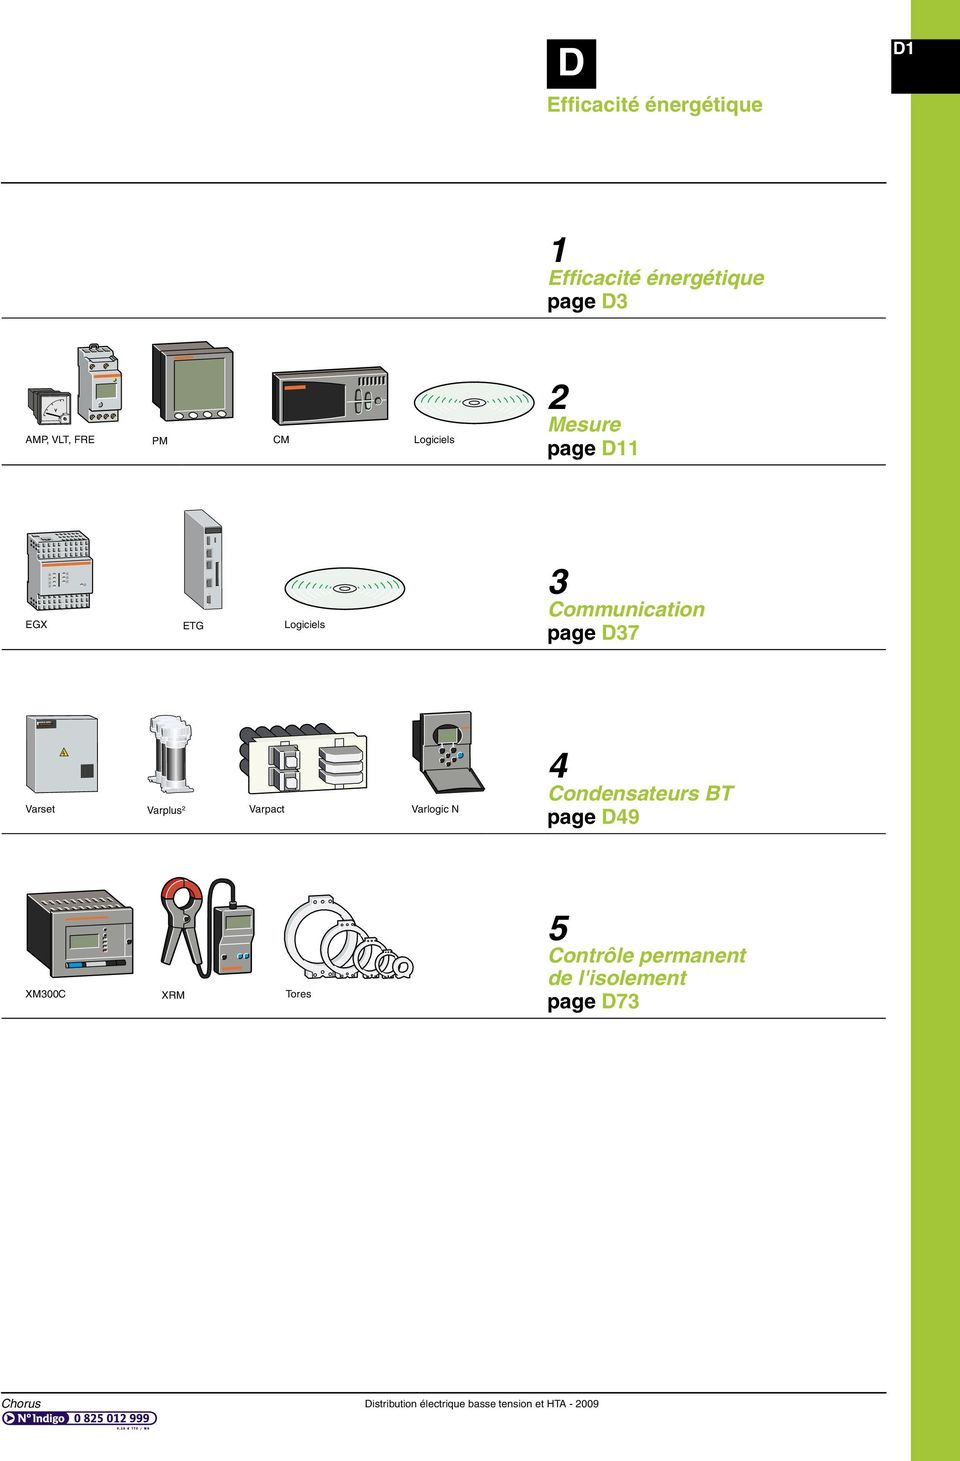 Communication page D37 Varset Varplus 2 Varpact Varlogic N 4